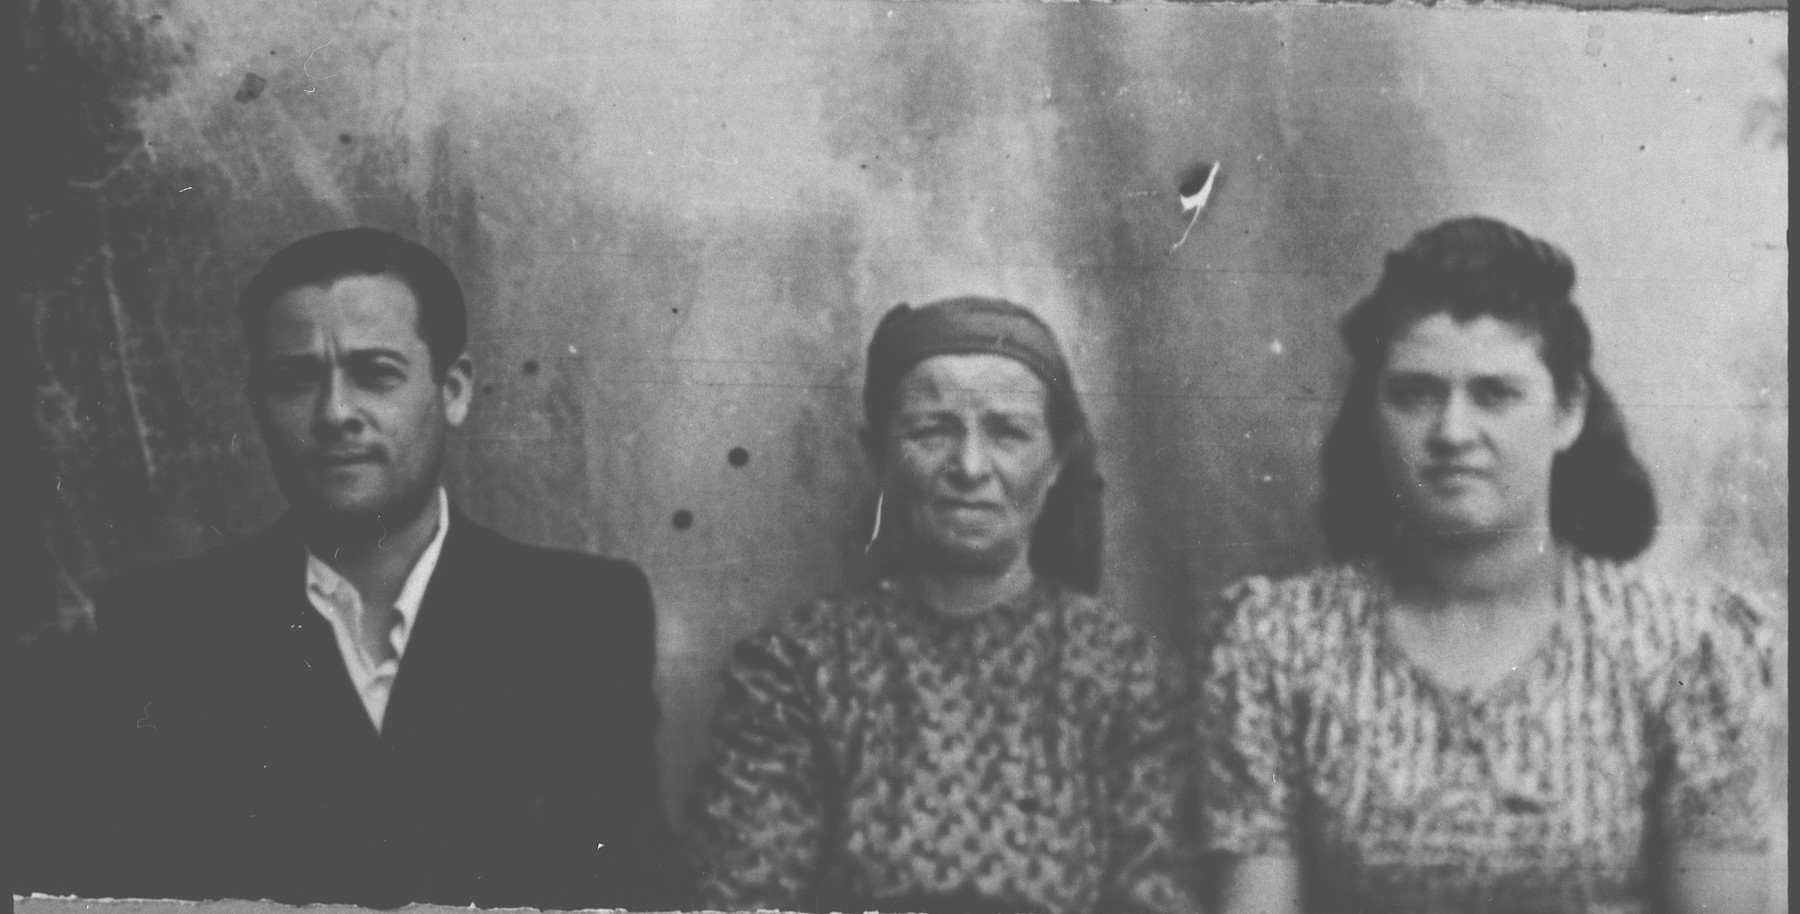 Portrait of Rekula Ischach (patronymic: Peris), Dario Ischach, son of Peris Ischach, and Sarika Ischach, daughter of Peris Ischach.  Dario was a tailor and Sarika, a student.  They lived at Karagoryeva 68 in Bitola.